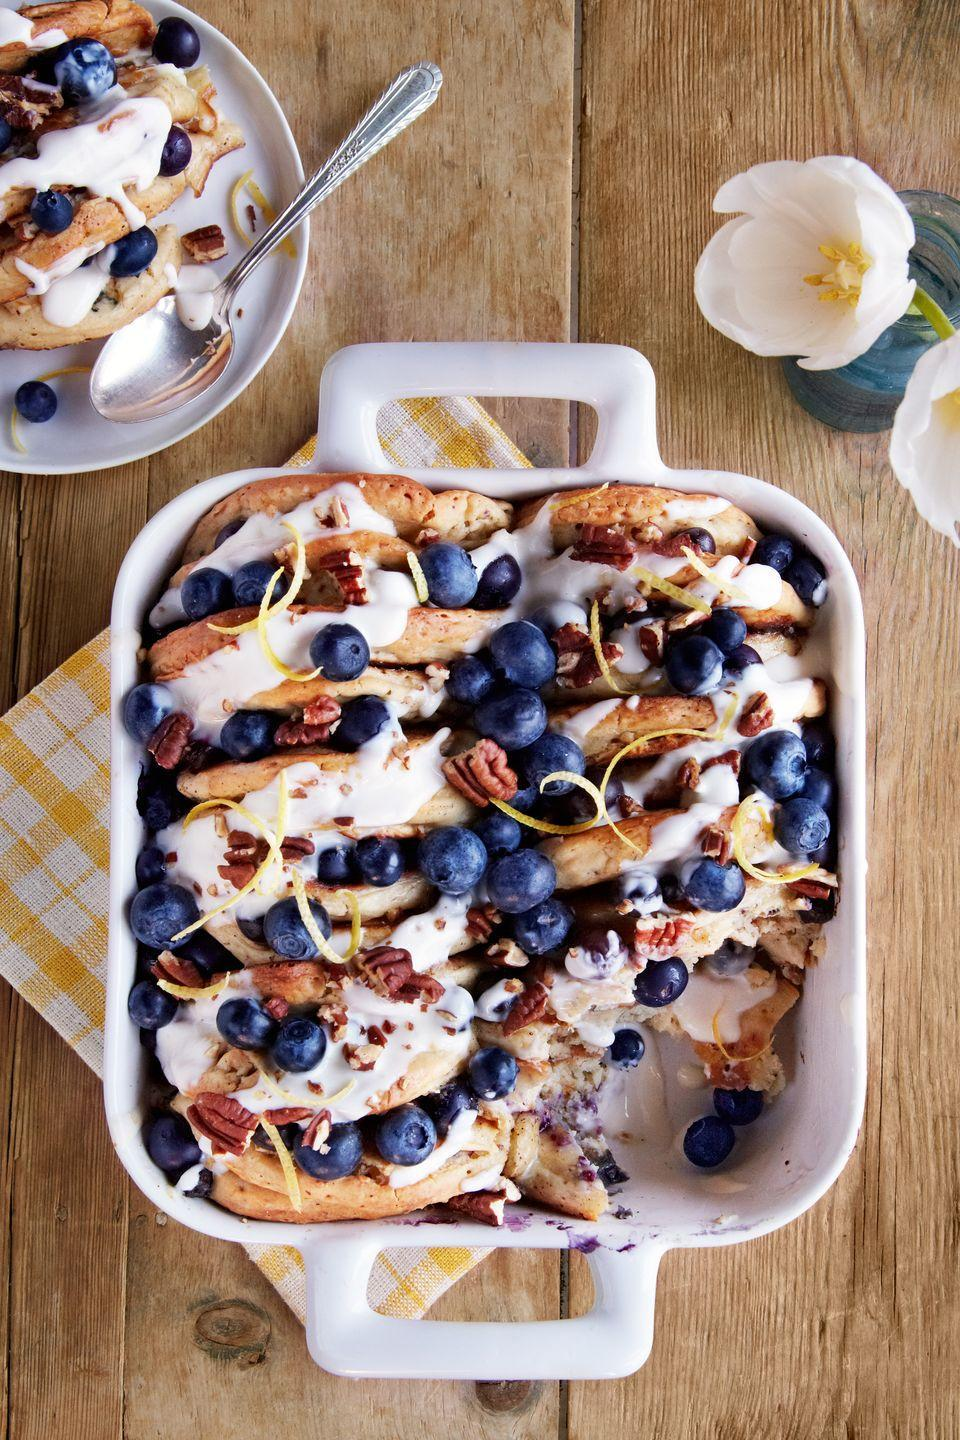 "Bread pudding and pancakes at the same time? Yes, it's as amazing as it sounds. <a href=""https://www.countryliving.com/food-drinks/recipes/a37601/blueberry-pecan-pancake-bread-pudding/"" rel=""nofollow noopener"" target=""_blank"" data-ylk=""slk:Get the recipe."" class=""link rapid-noclick-resp""><strong>Get the recipe.</strong></a>"